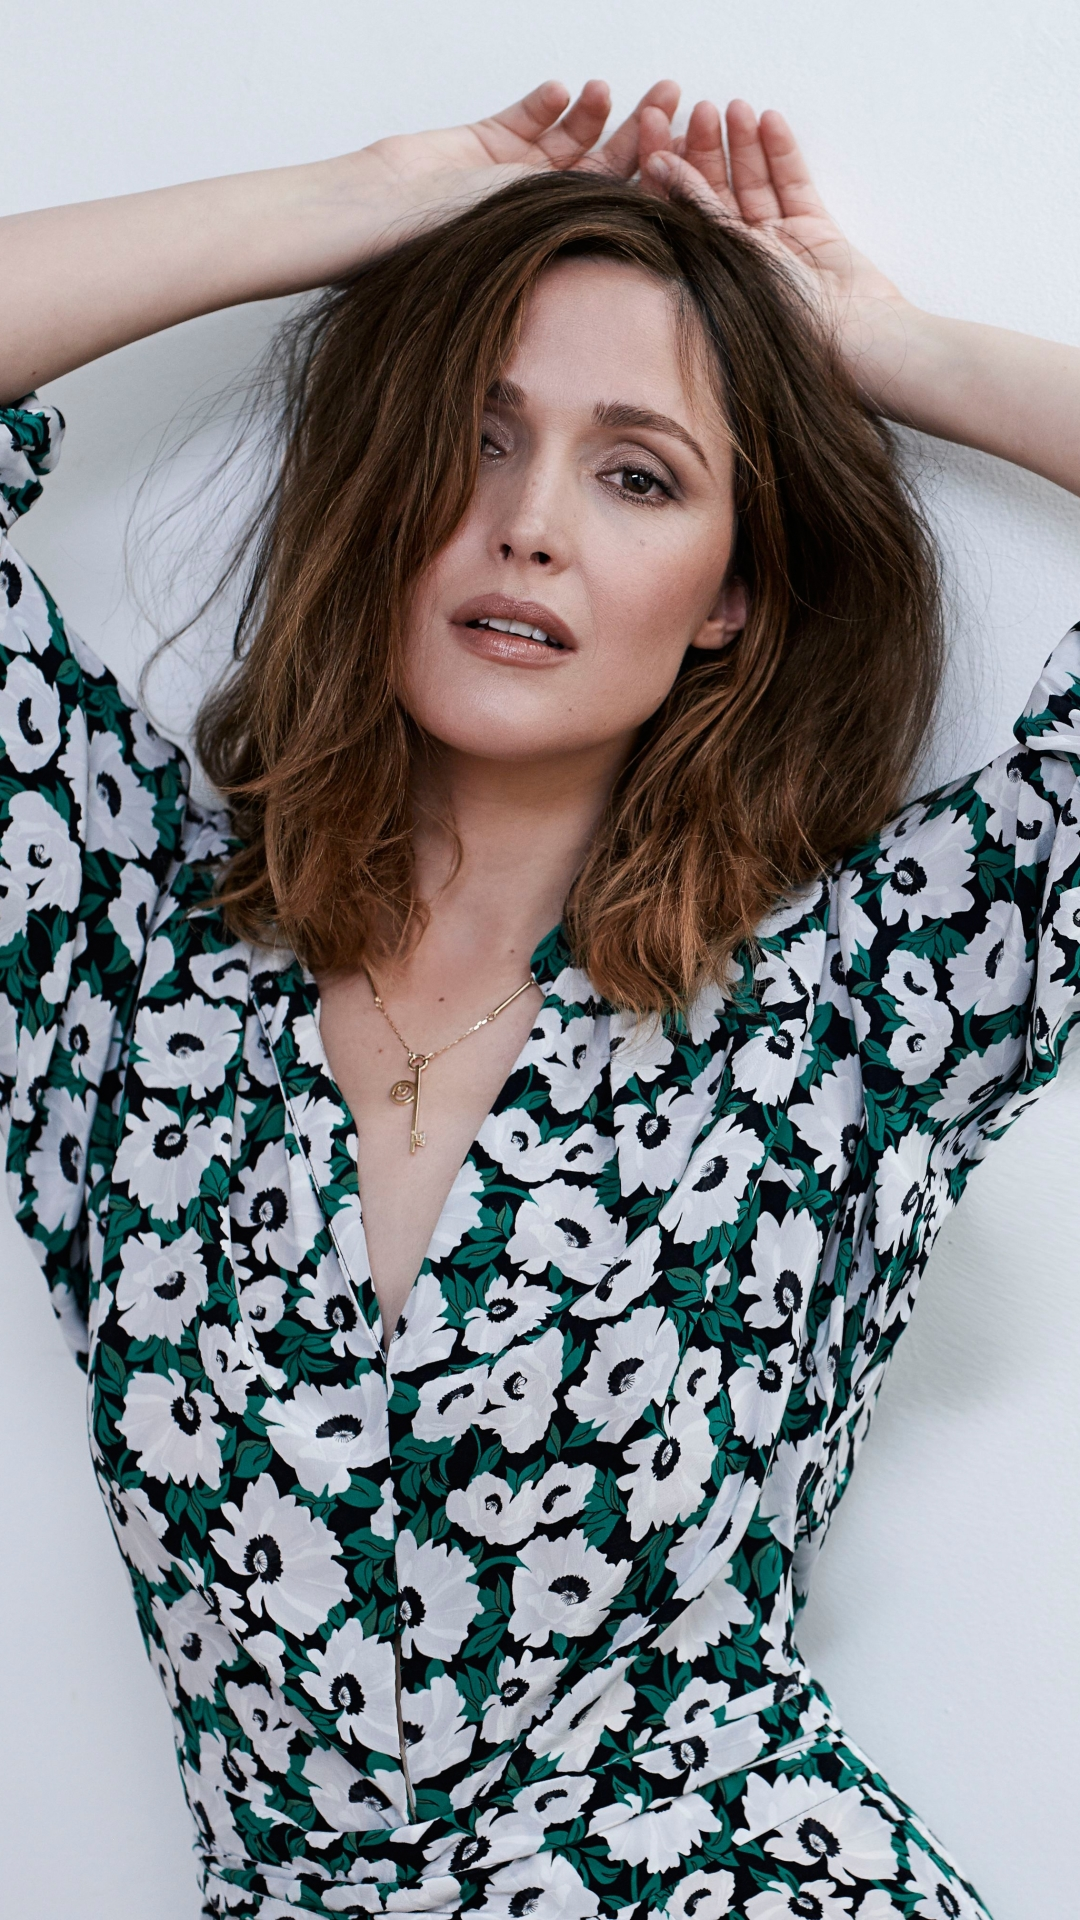 Celebrity Rose Byrne nudes (39 photo), Tits, Leaked, Selfie, lingerie 2018